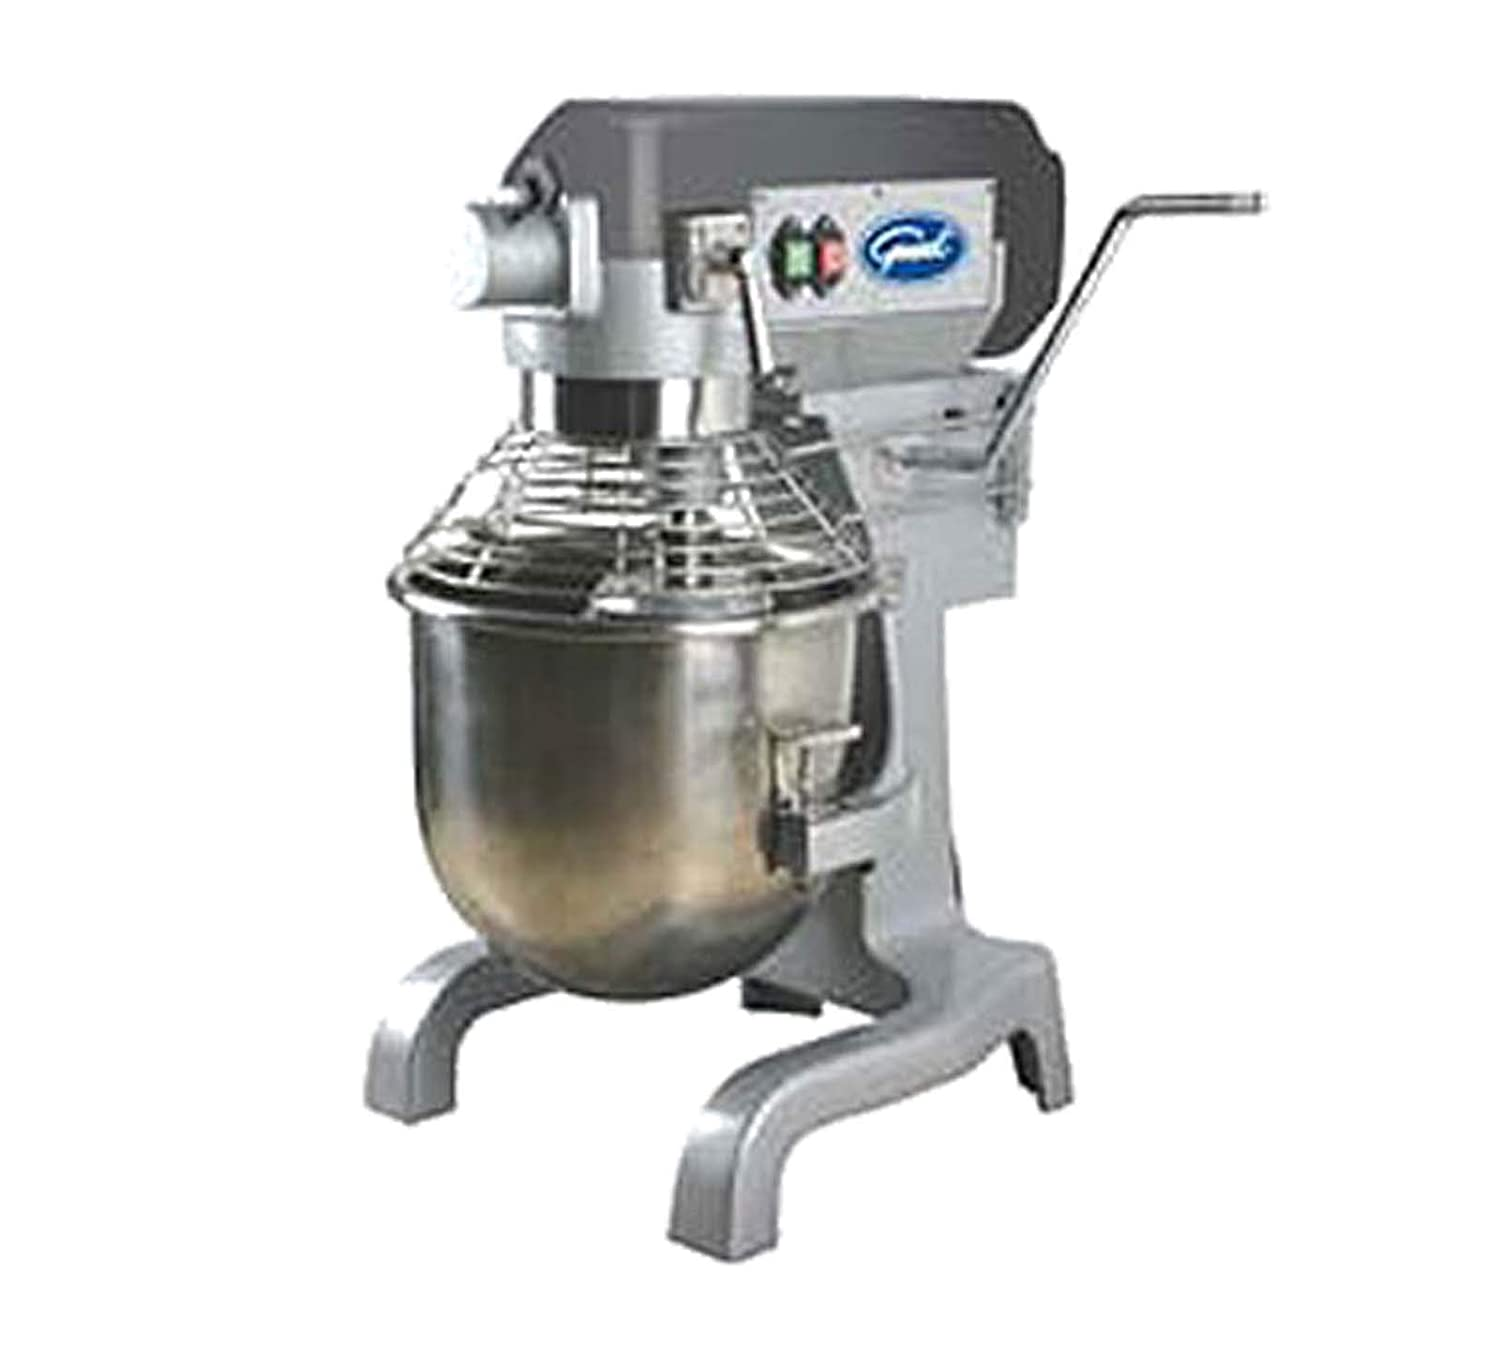 Amazon.com: General Commercial Planetary Mixer 20 Quart 3 ...